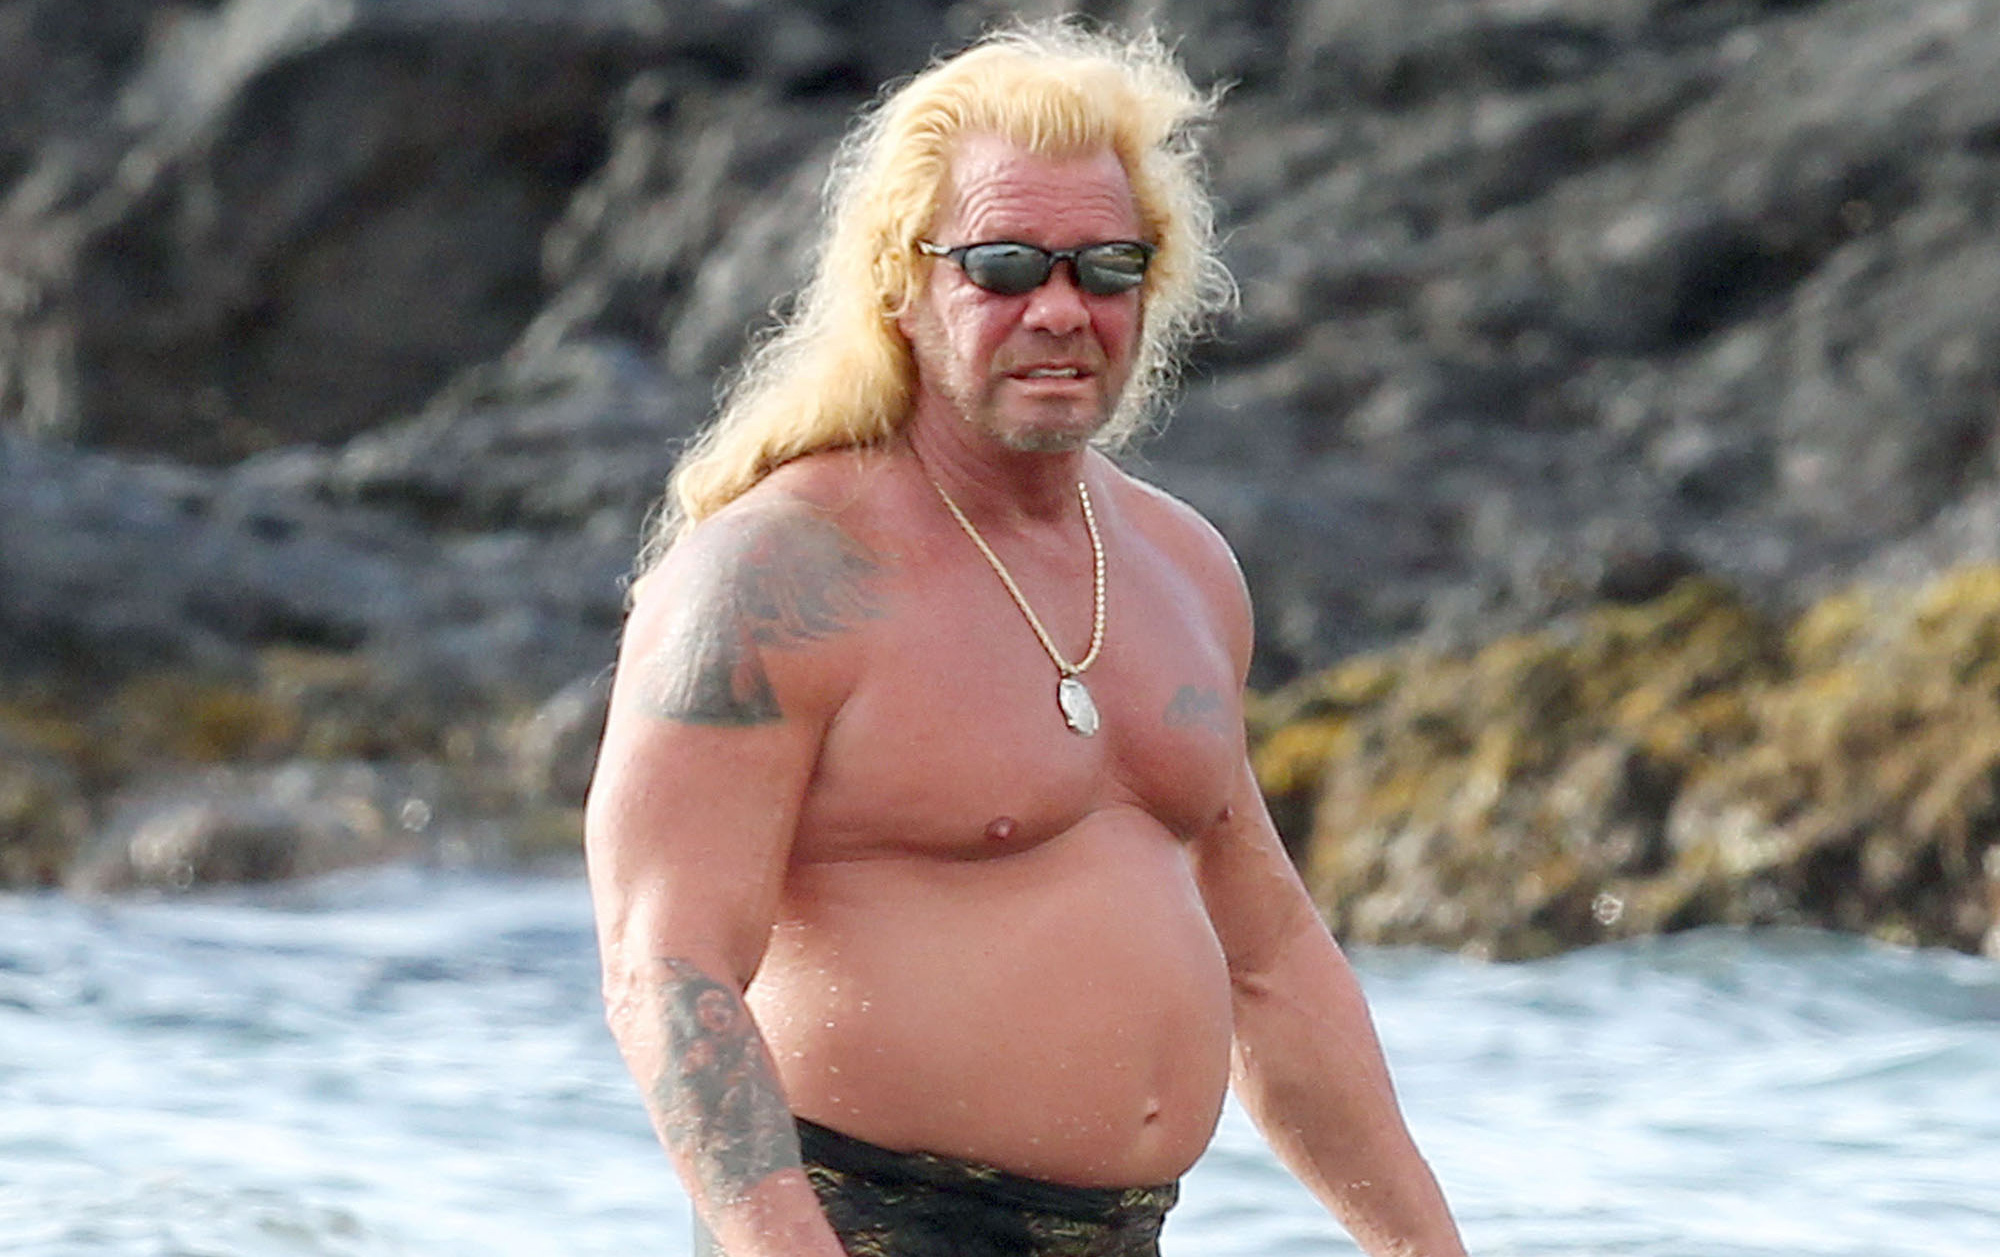 dog-bounty-hunter-hawaii-0319